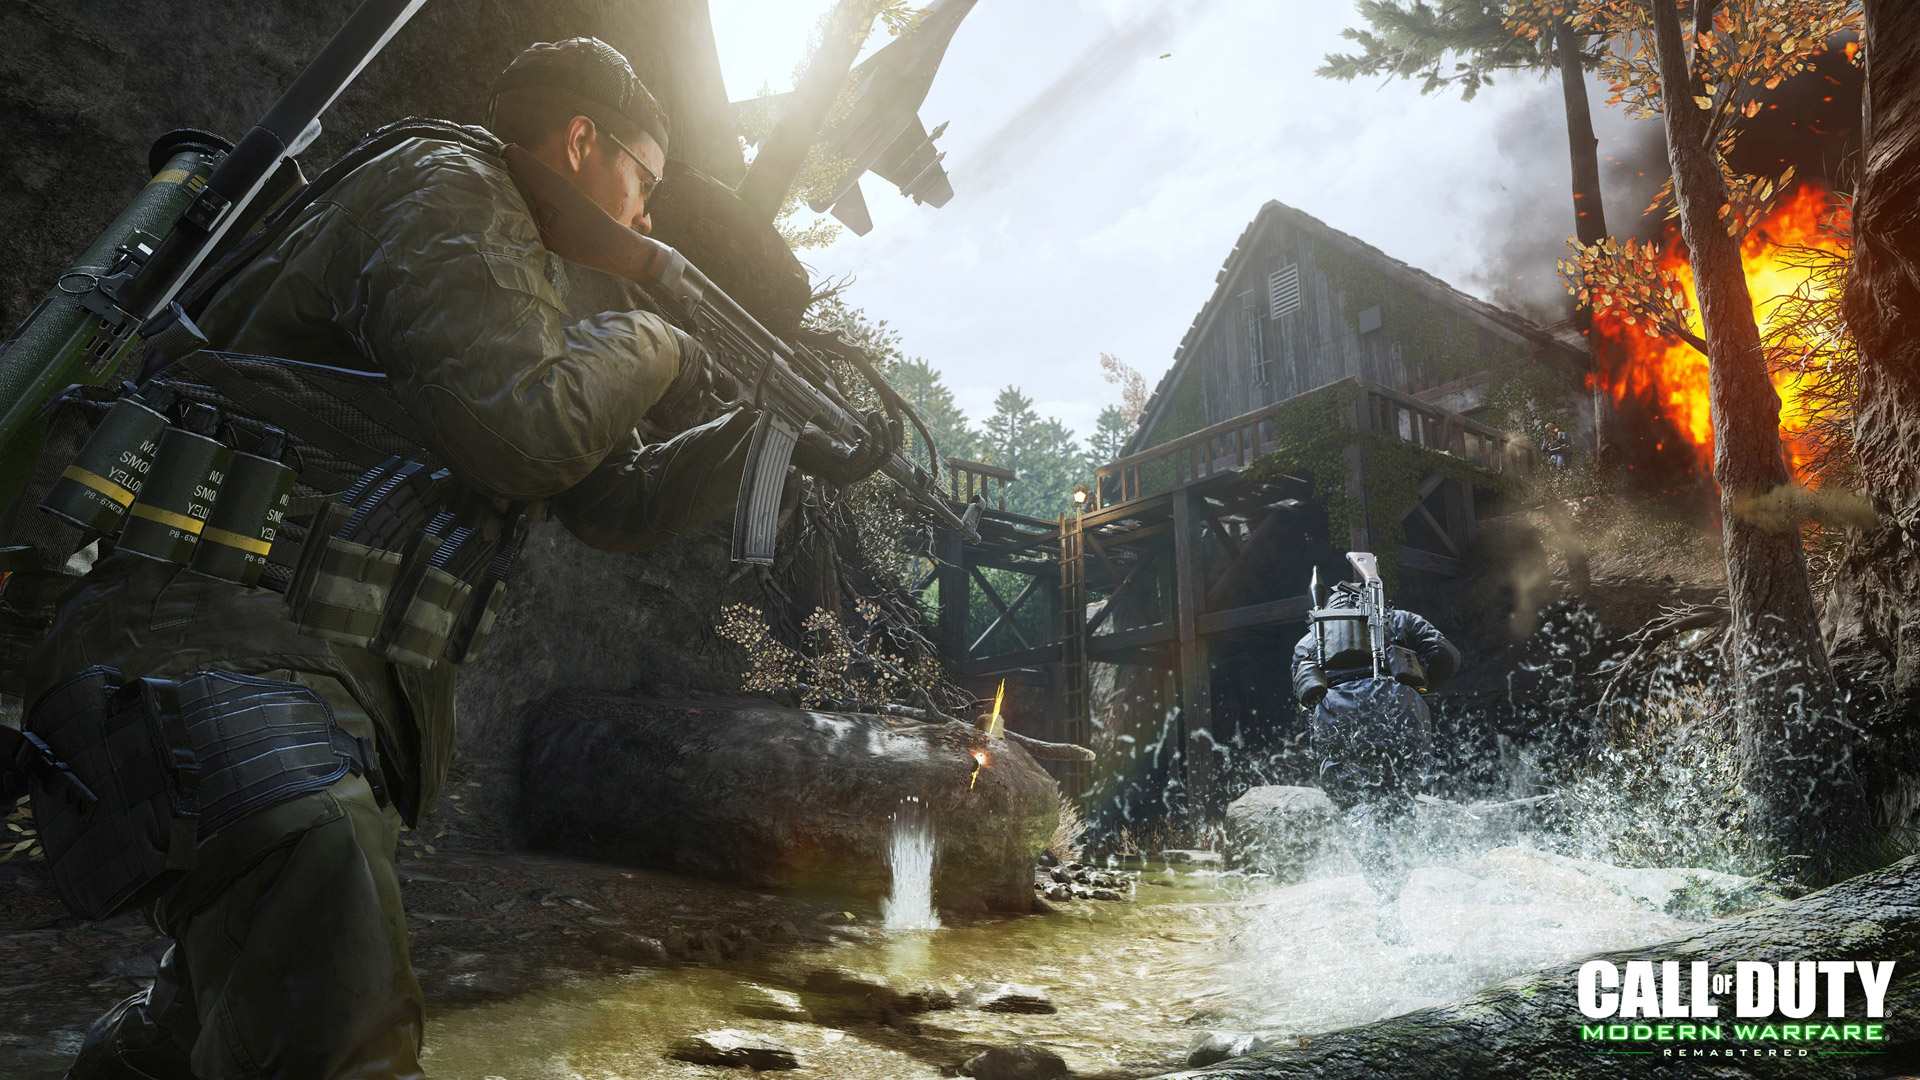 call of duty modern warfare wallpaper phone